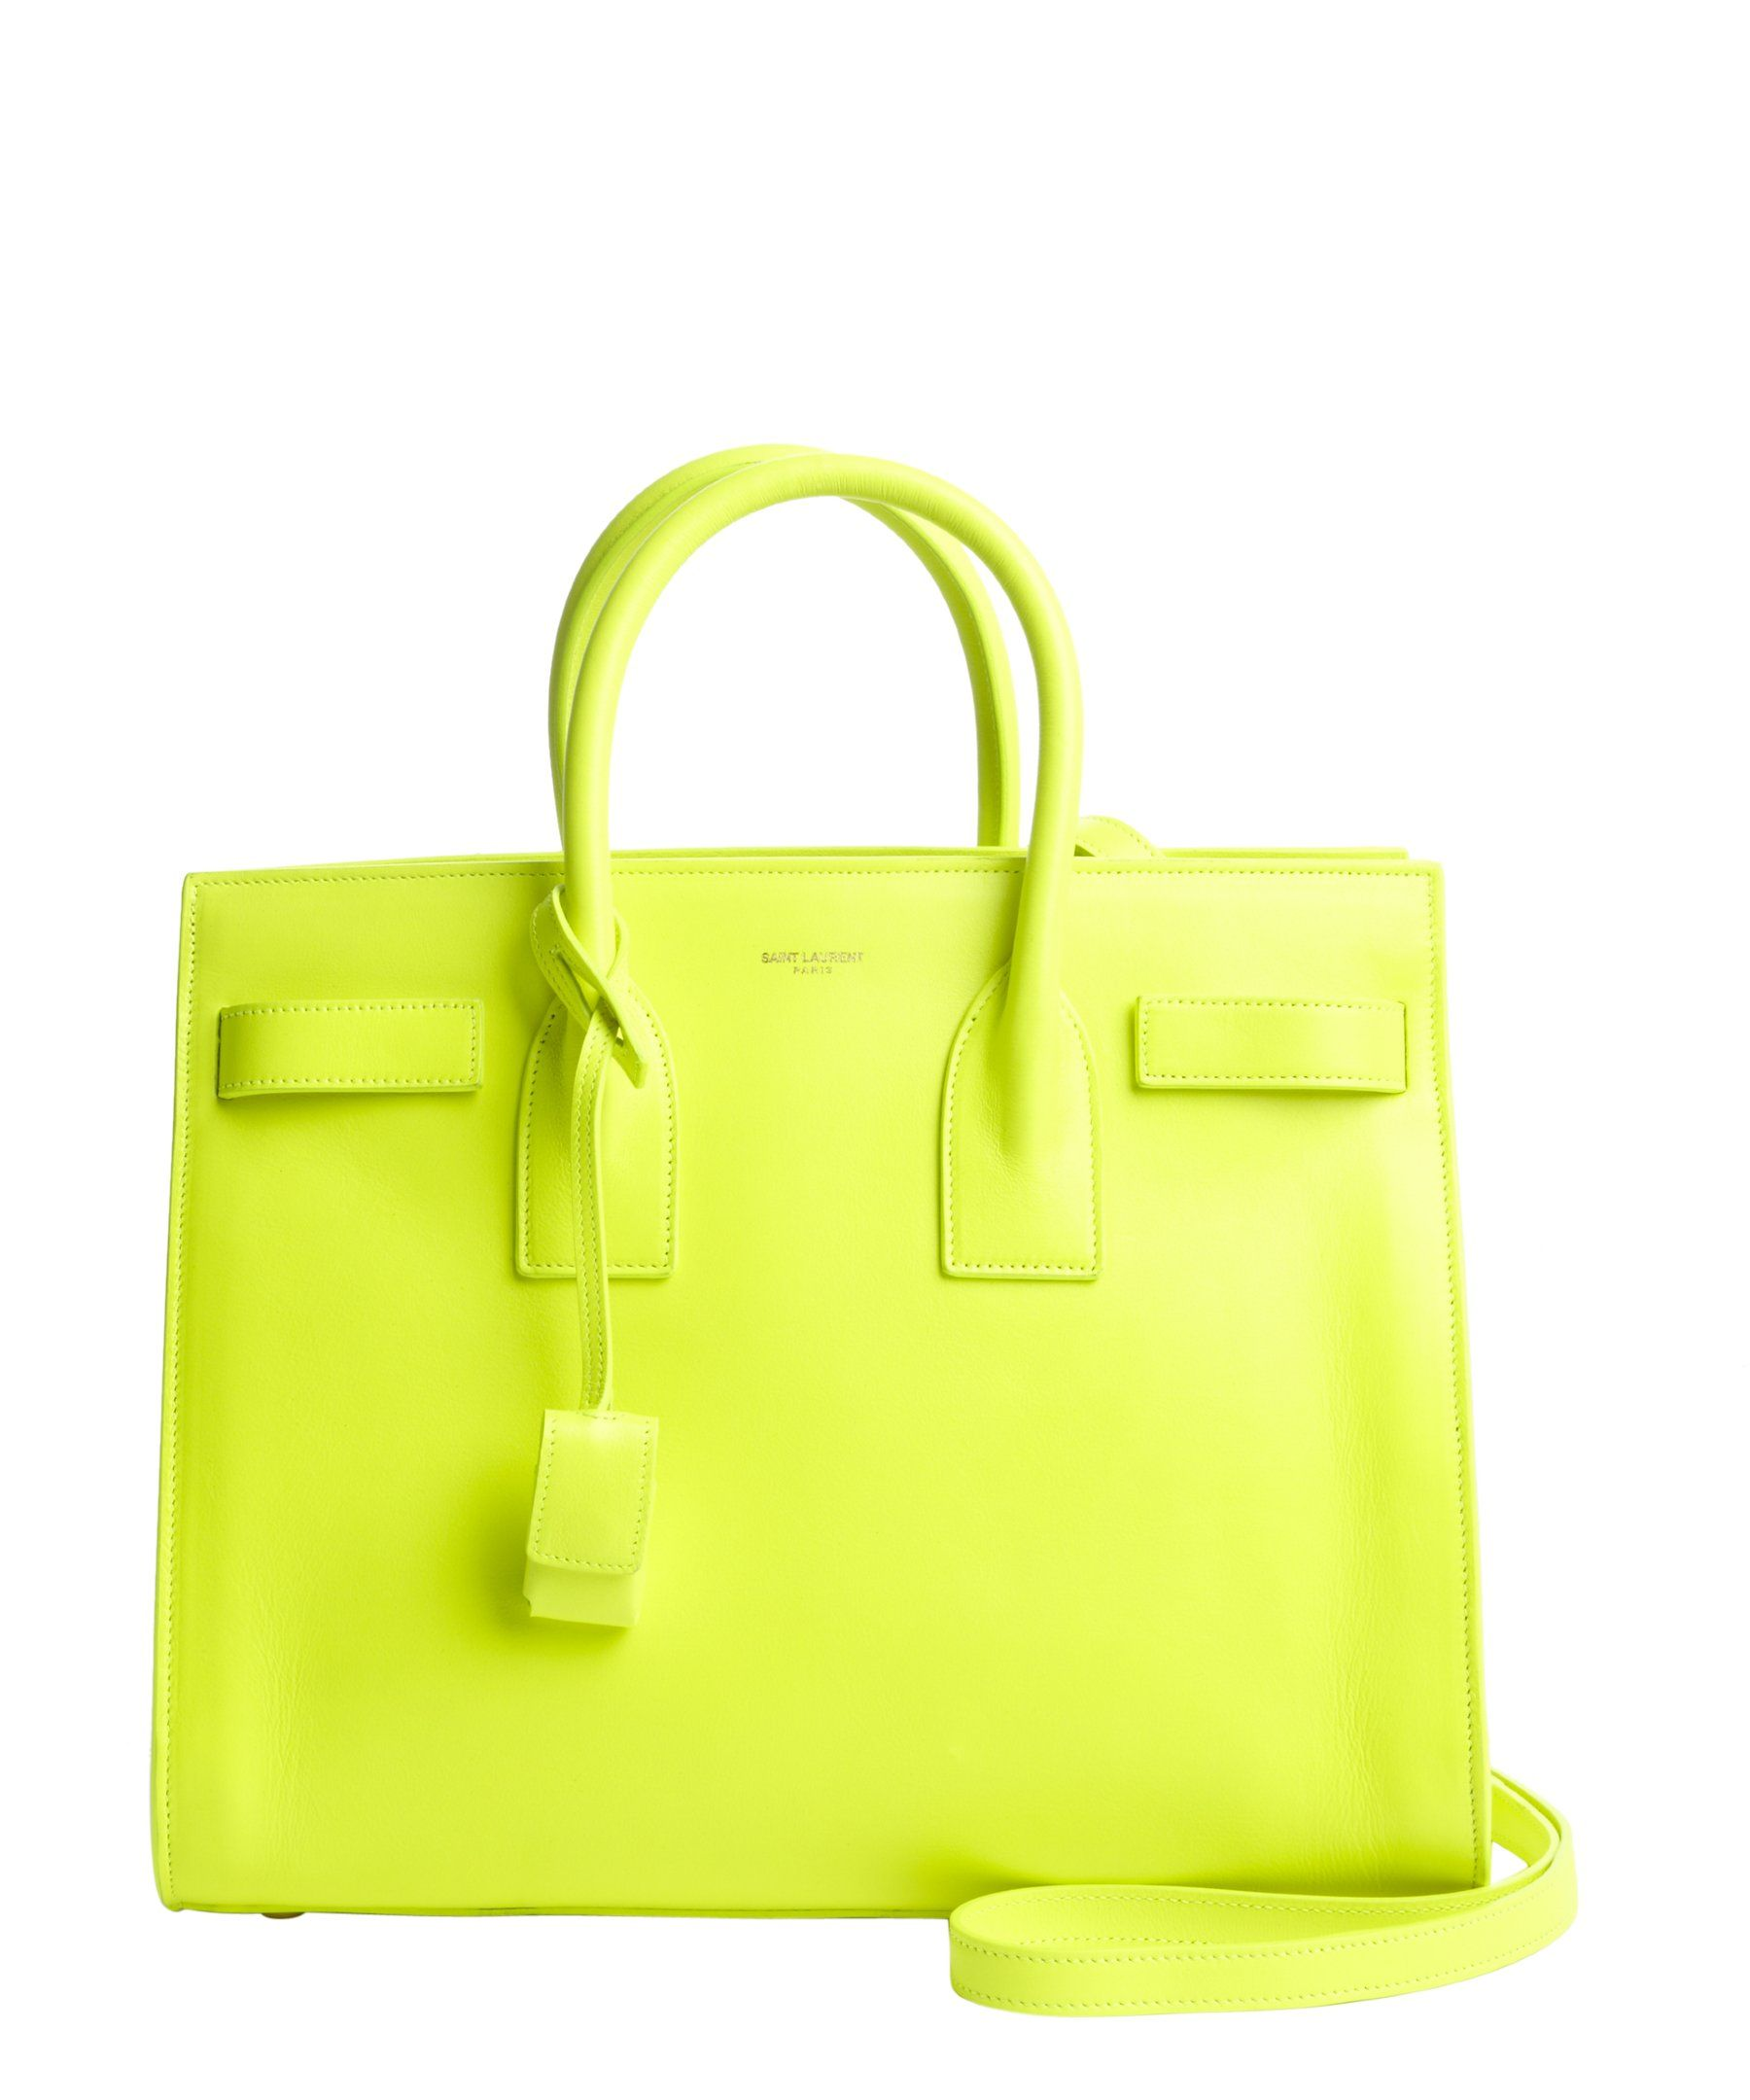 Saint Laurent neon yellow leather logo stamp convertible top handle tote | BLUEFLY up to 70% off designer brands